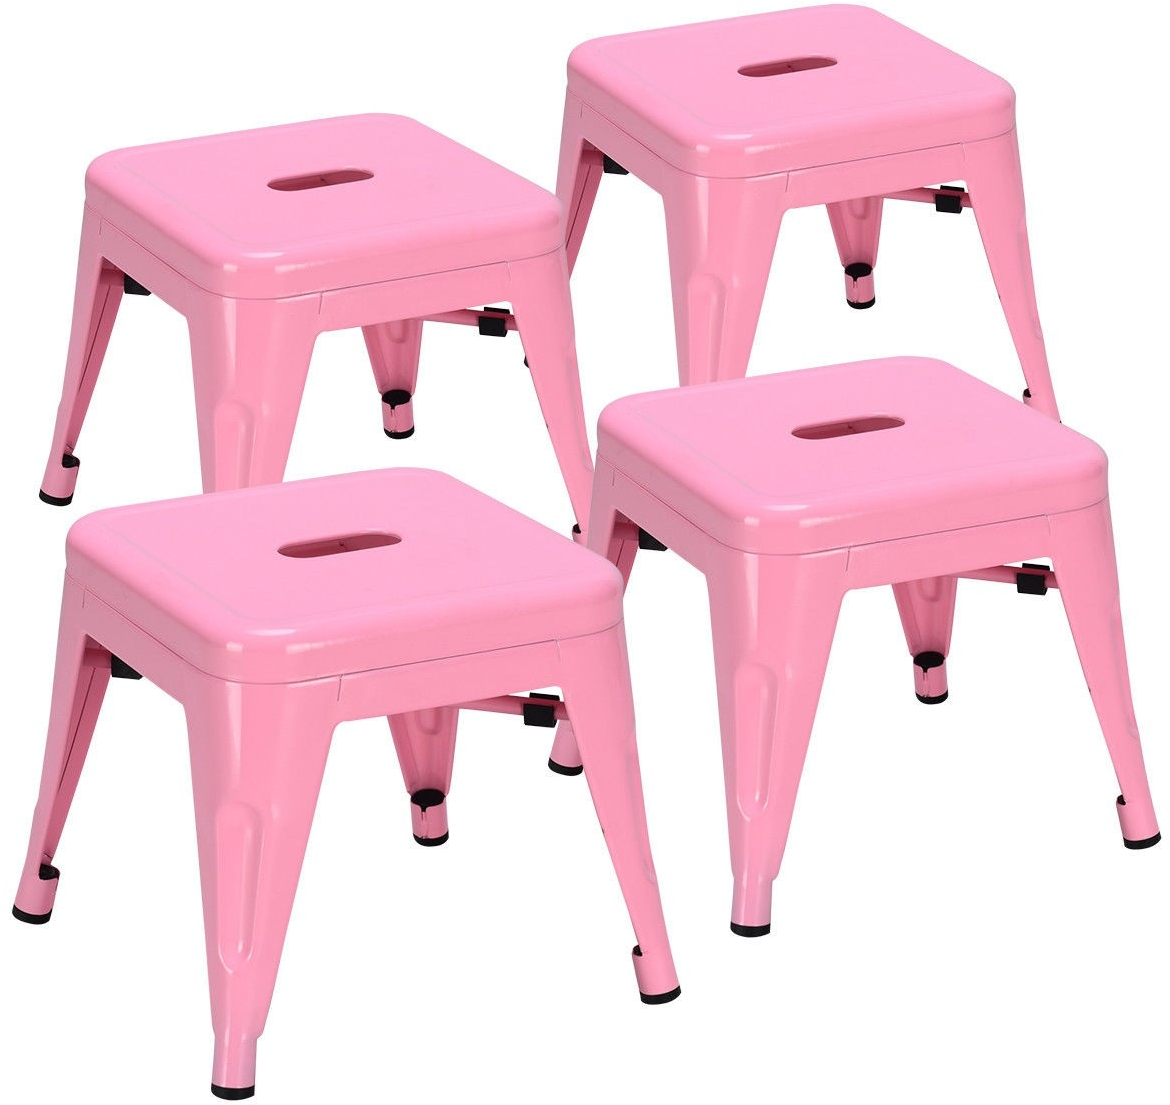 Awesome Details About Set Of 4 Lightweight Stackable Metal Tolix Kids Stools Pink Kids Chair Classroom Dailytribune Chair Design For Home Dailytribuneorg